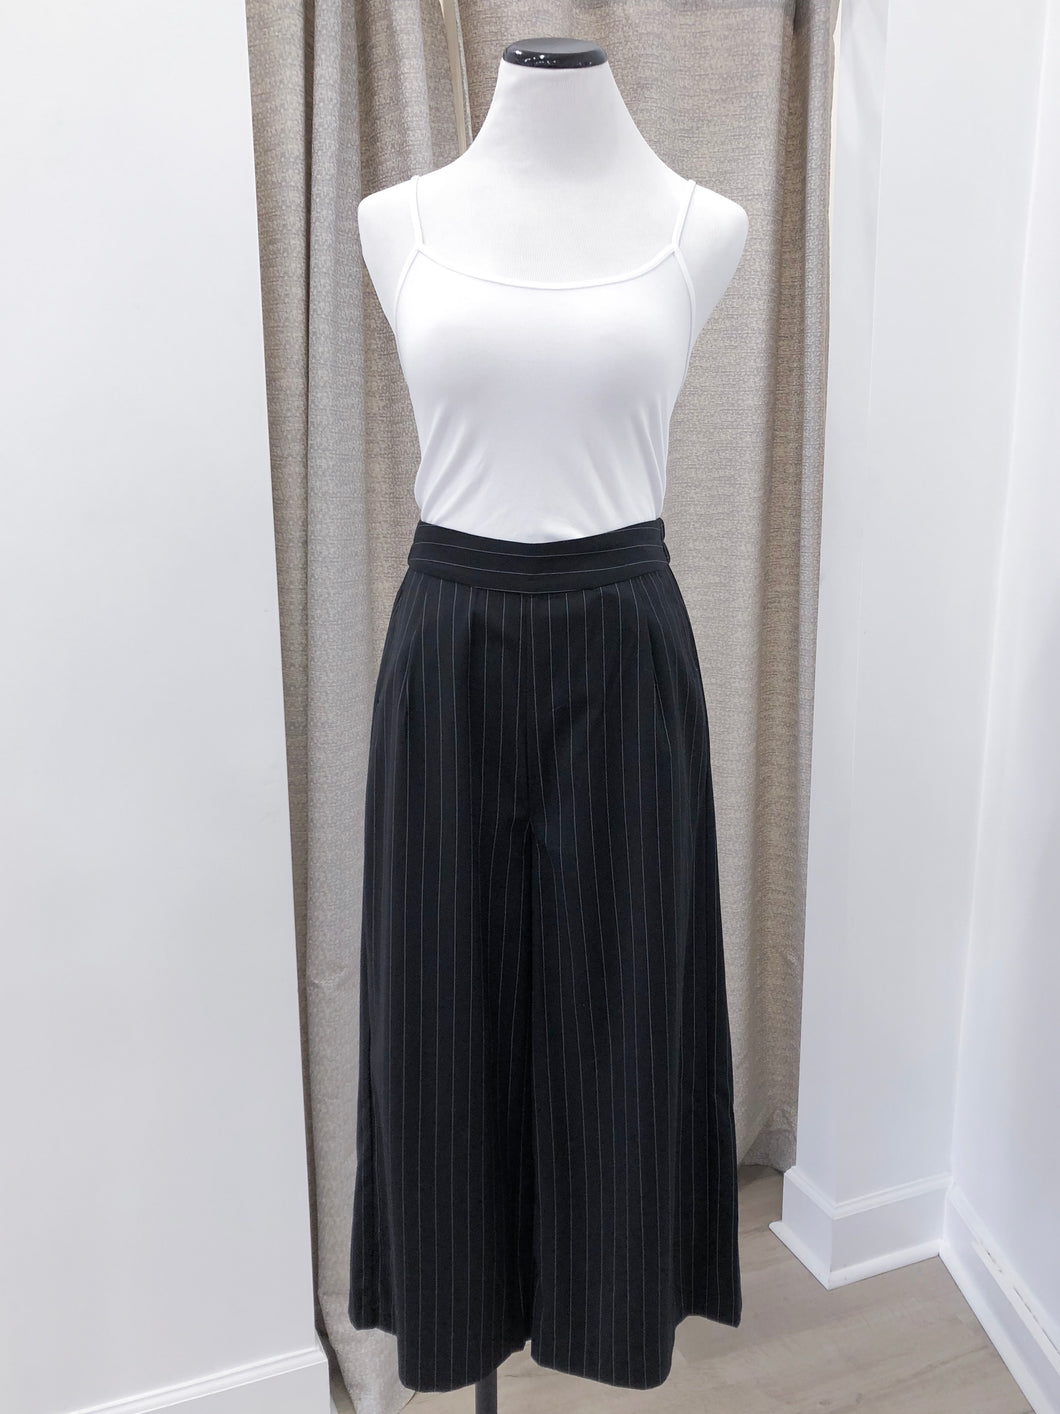 Marsielle Culotte Pants - FINAL SALE